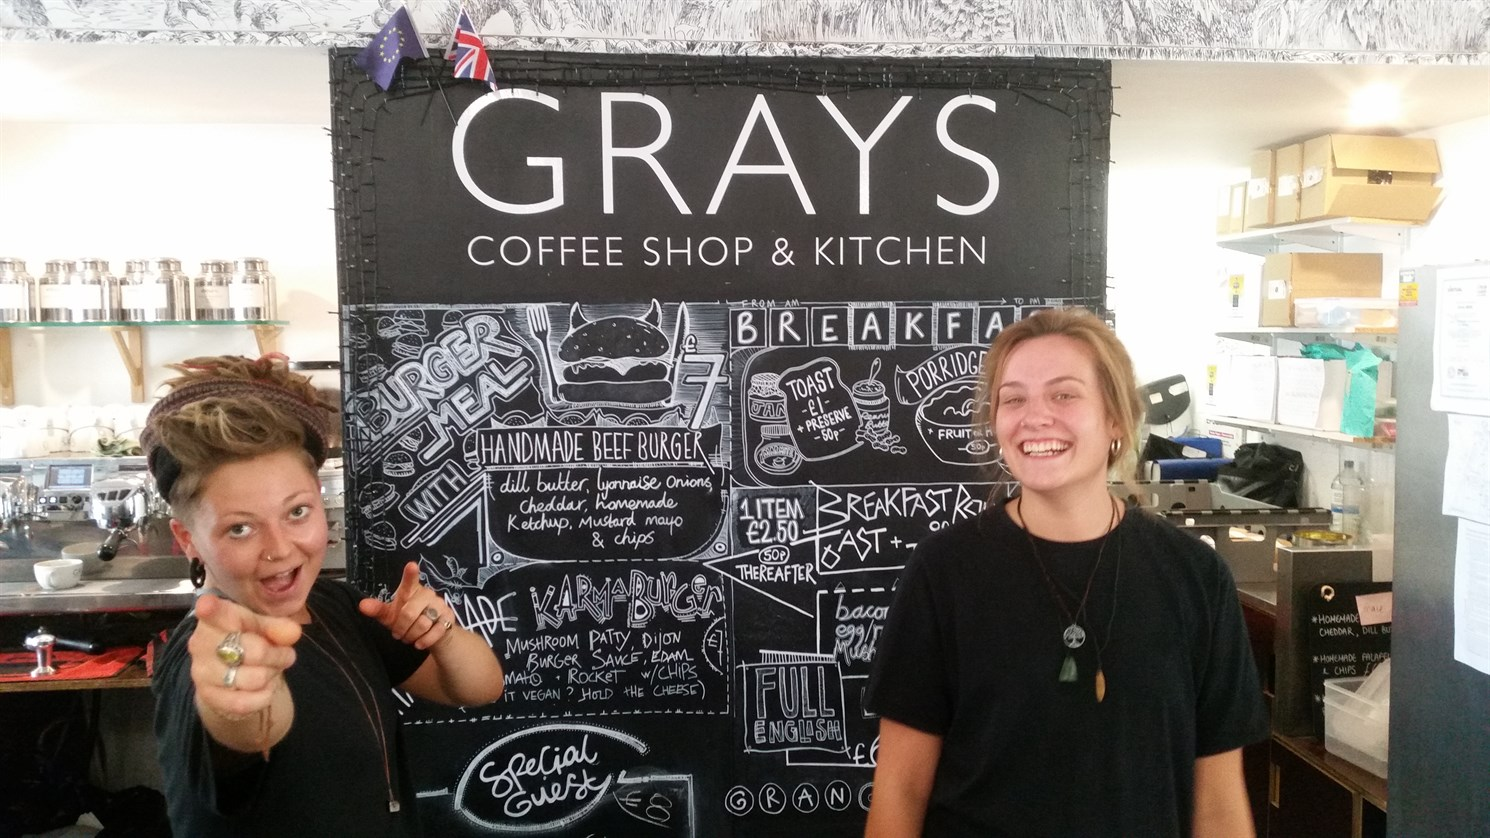 Eat, meet, drink in our cafe-bar - Grays Coffee Shop & Kitchen